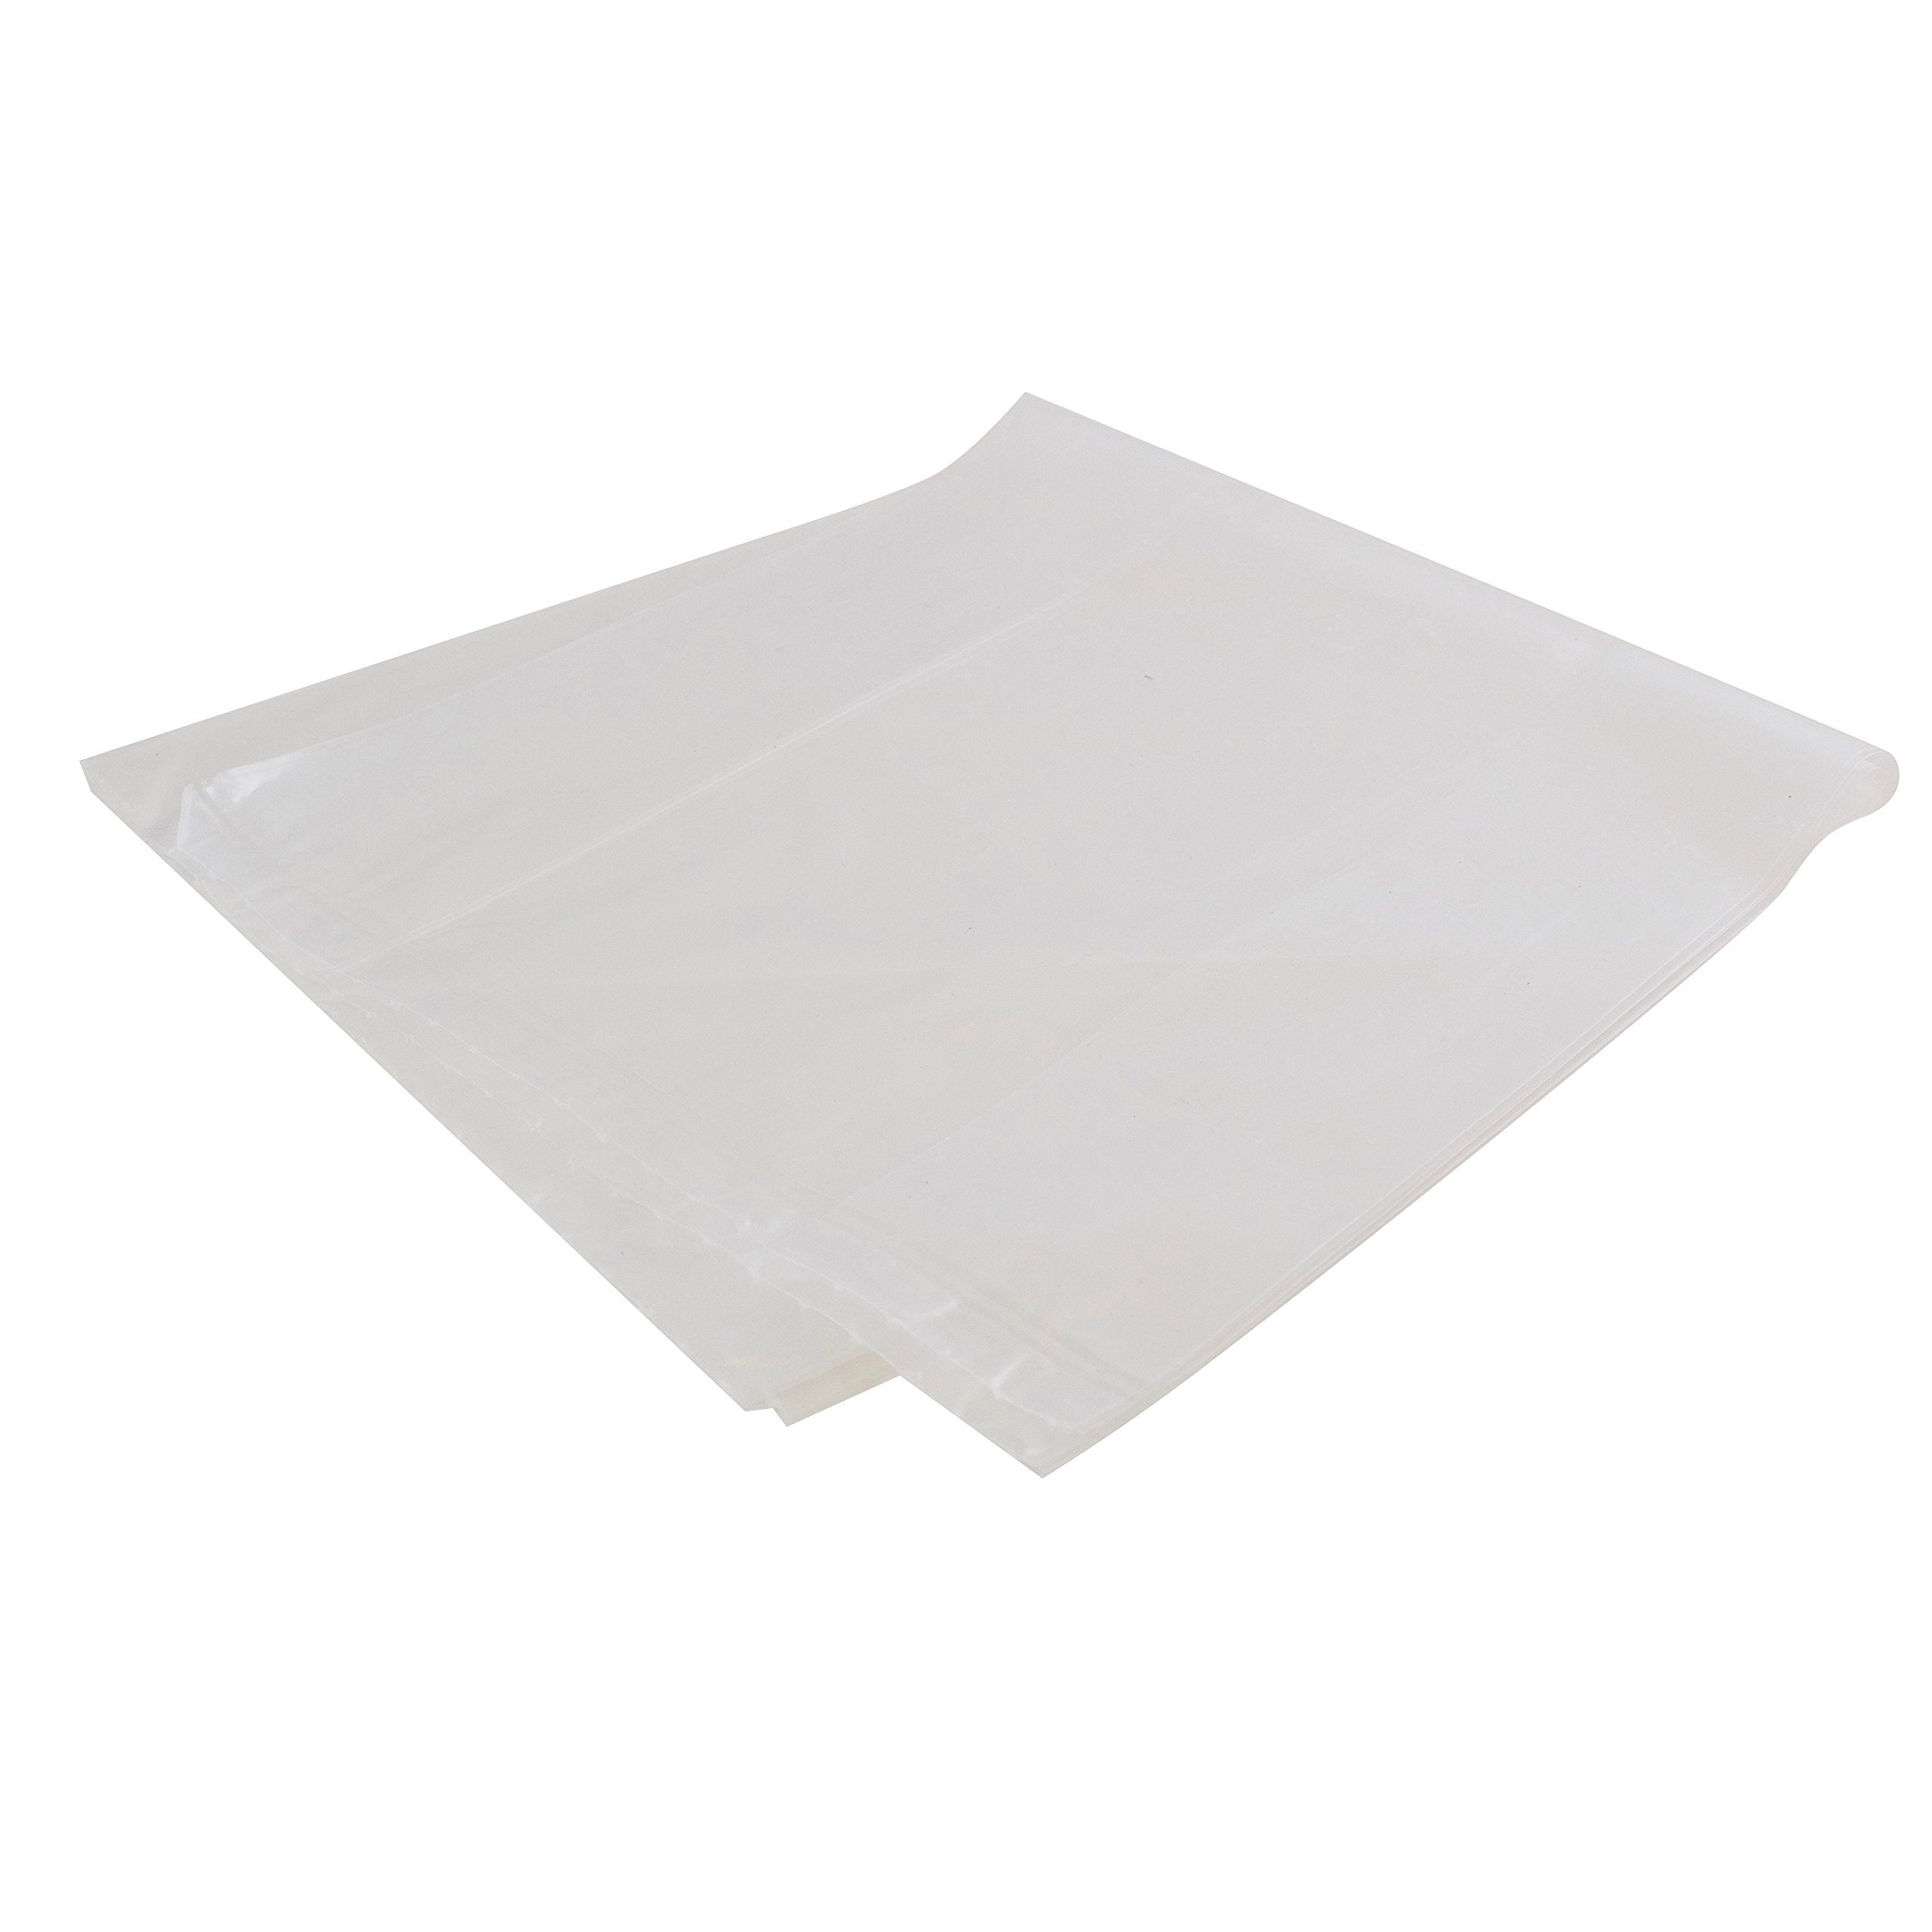 Gussetted Poly Bags, Low Density, 1.5 mil Thick, 8 x 4 x 18 Inches, 100 Bags per Case